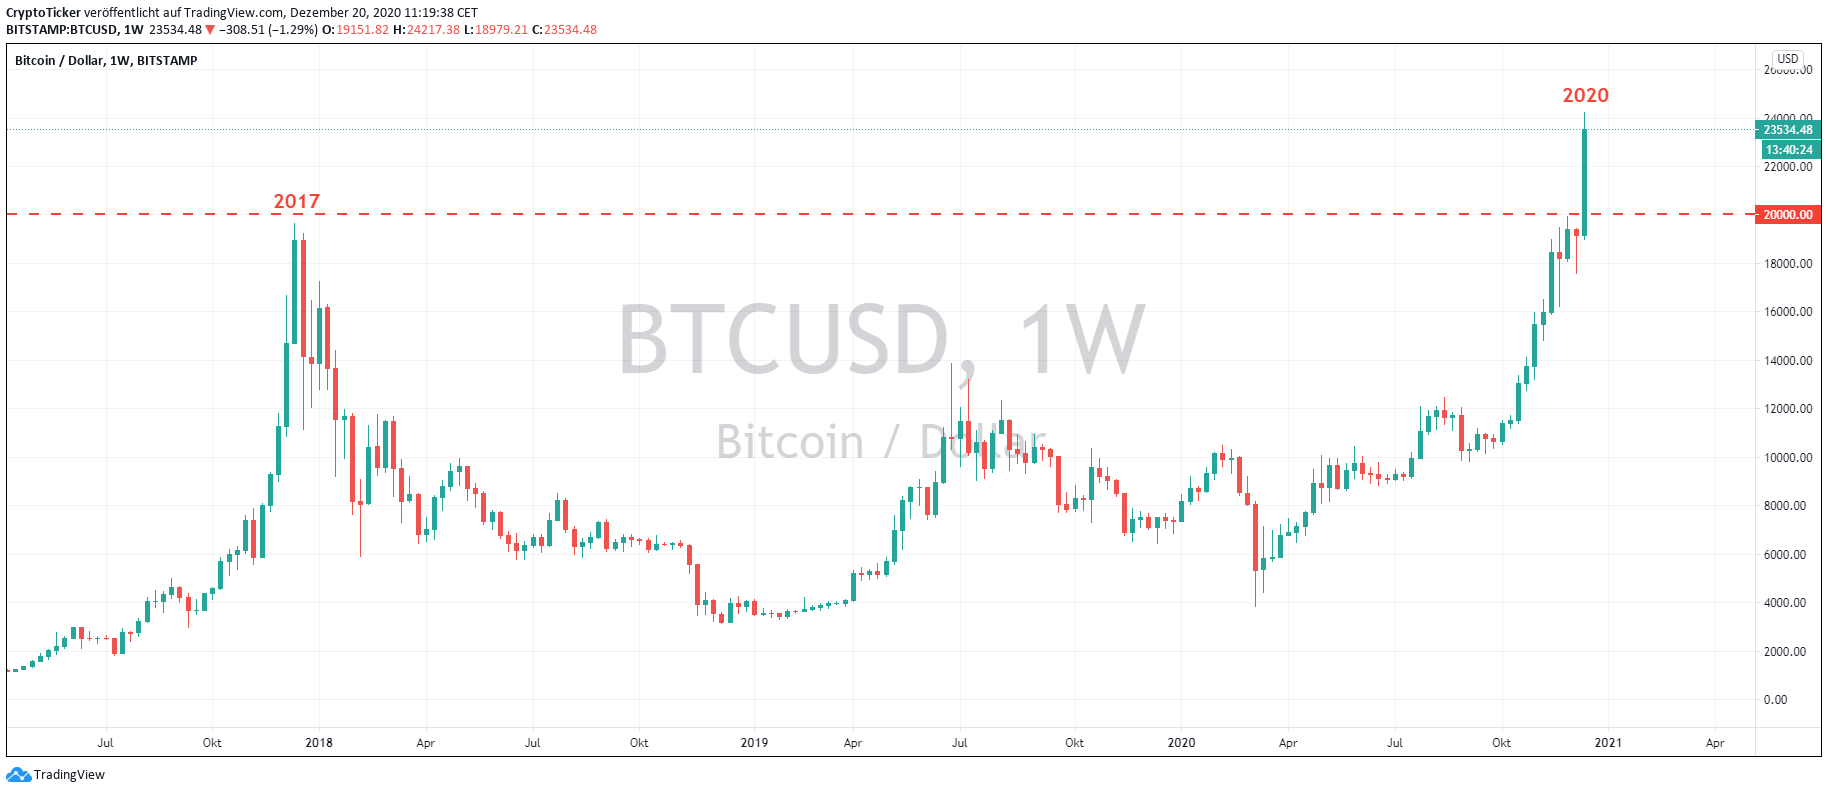 BTC/USD 1-Week chart – a contrast between 2017 and 2020